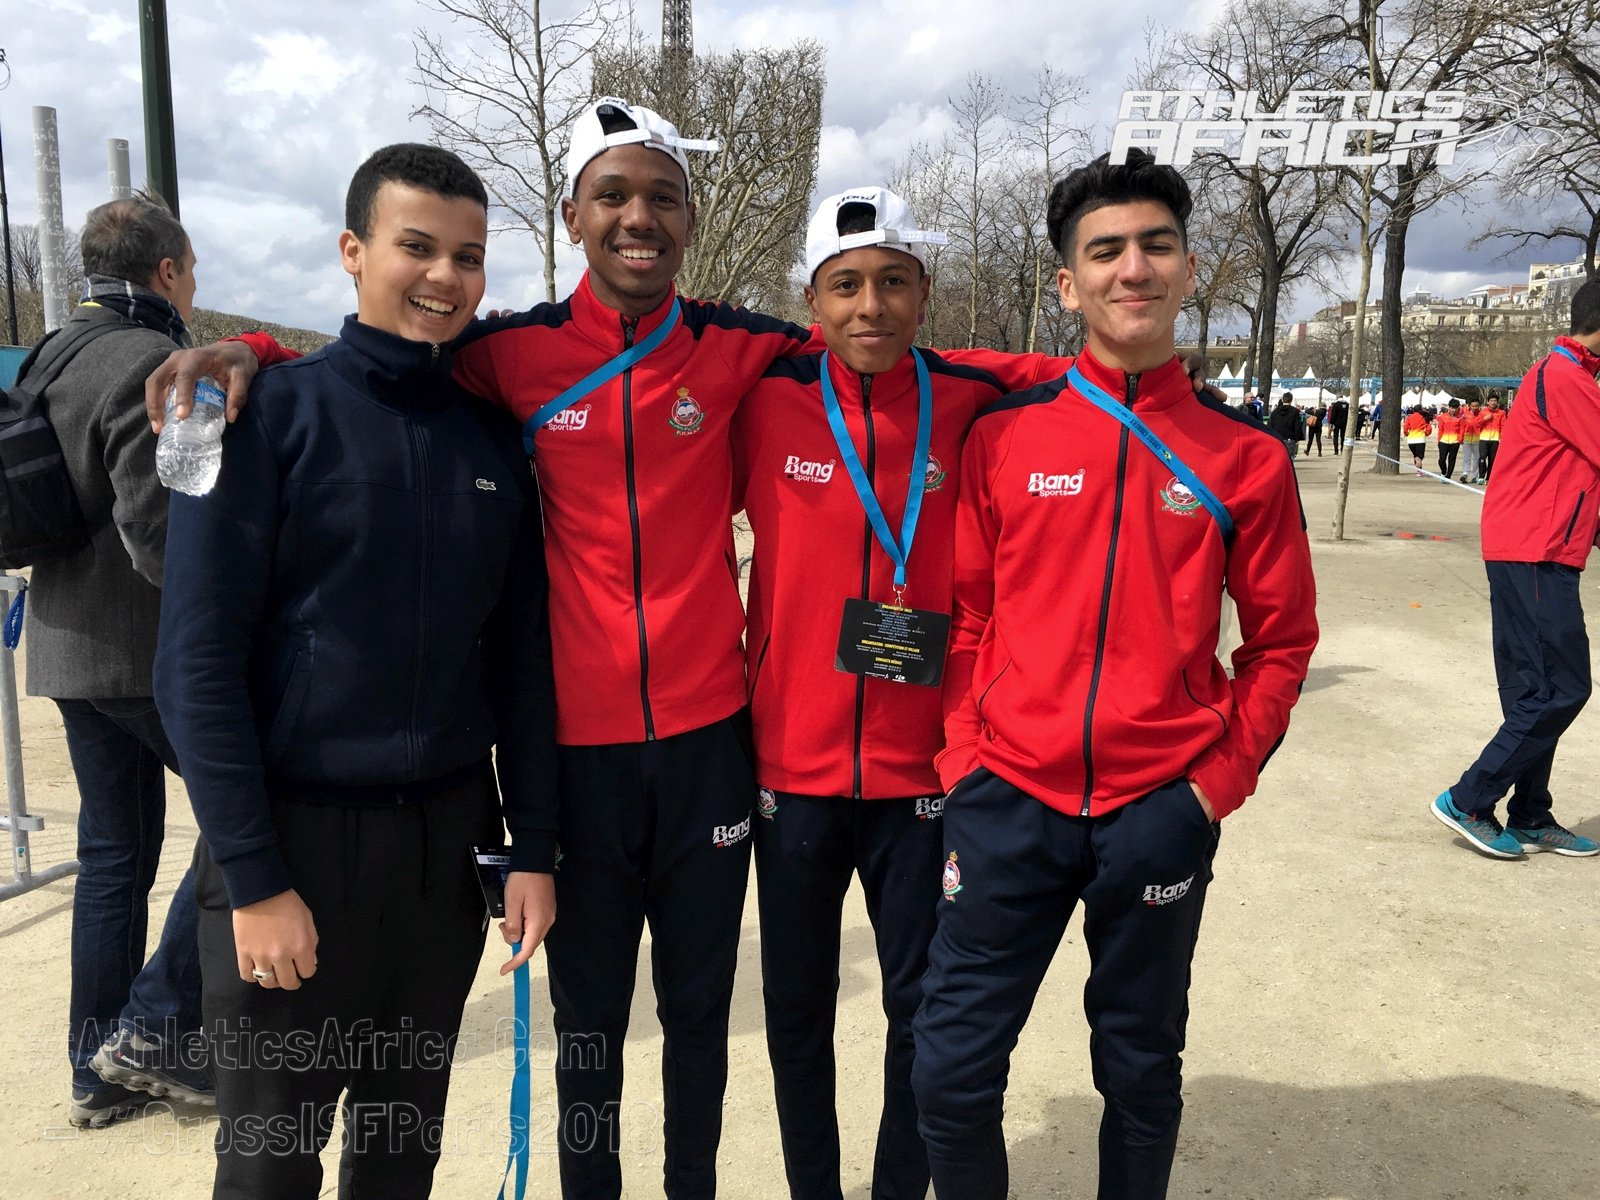 Moroccan youth athletes at the 2018 International School Sport Federation World School Championship (WSC) Cross Country in Paris on Wednesday 4 April / Photo Credit: Yomi Omogbeja